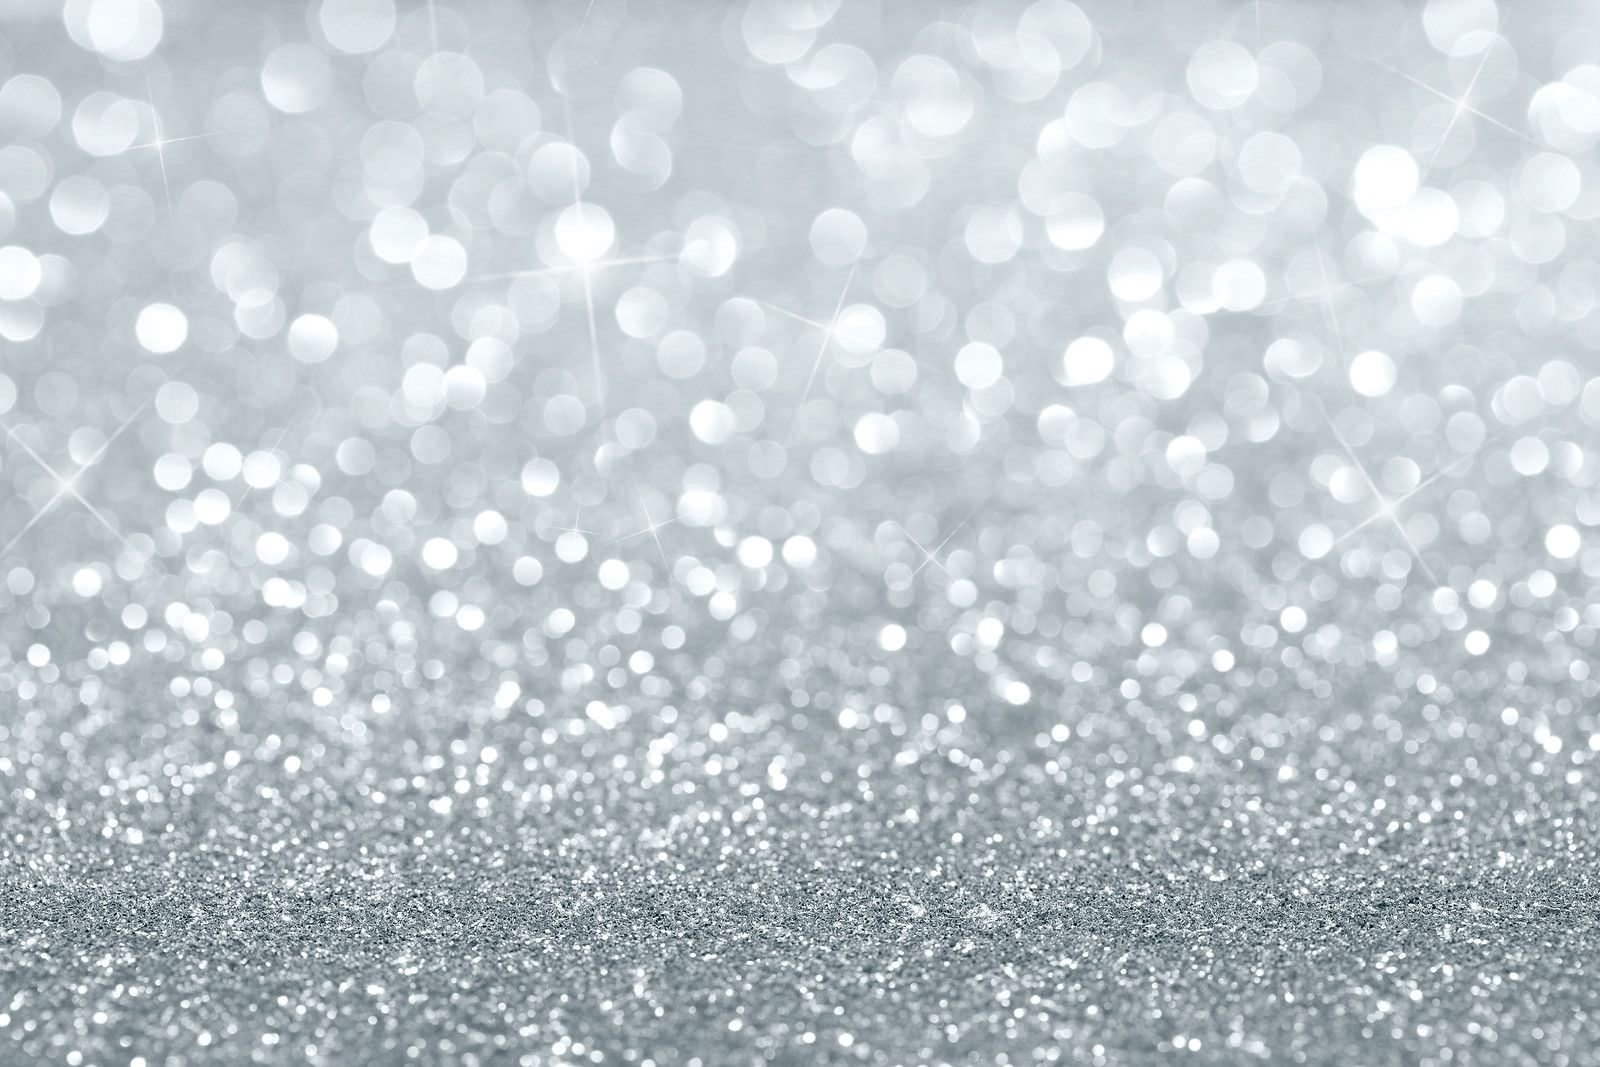 Sparkling White Glitter Desktop Background